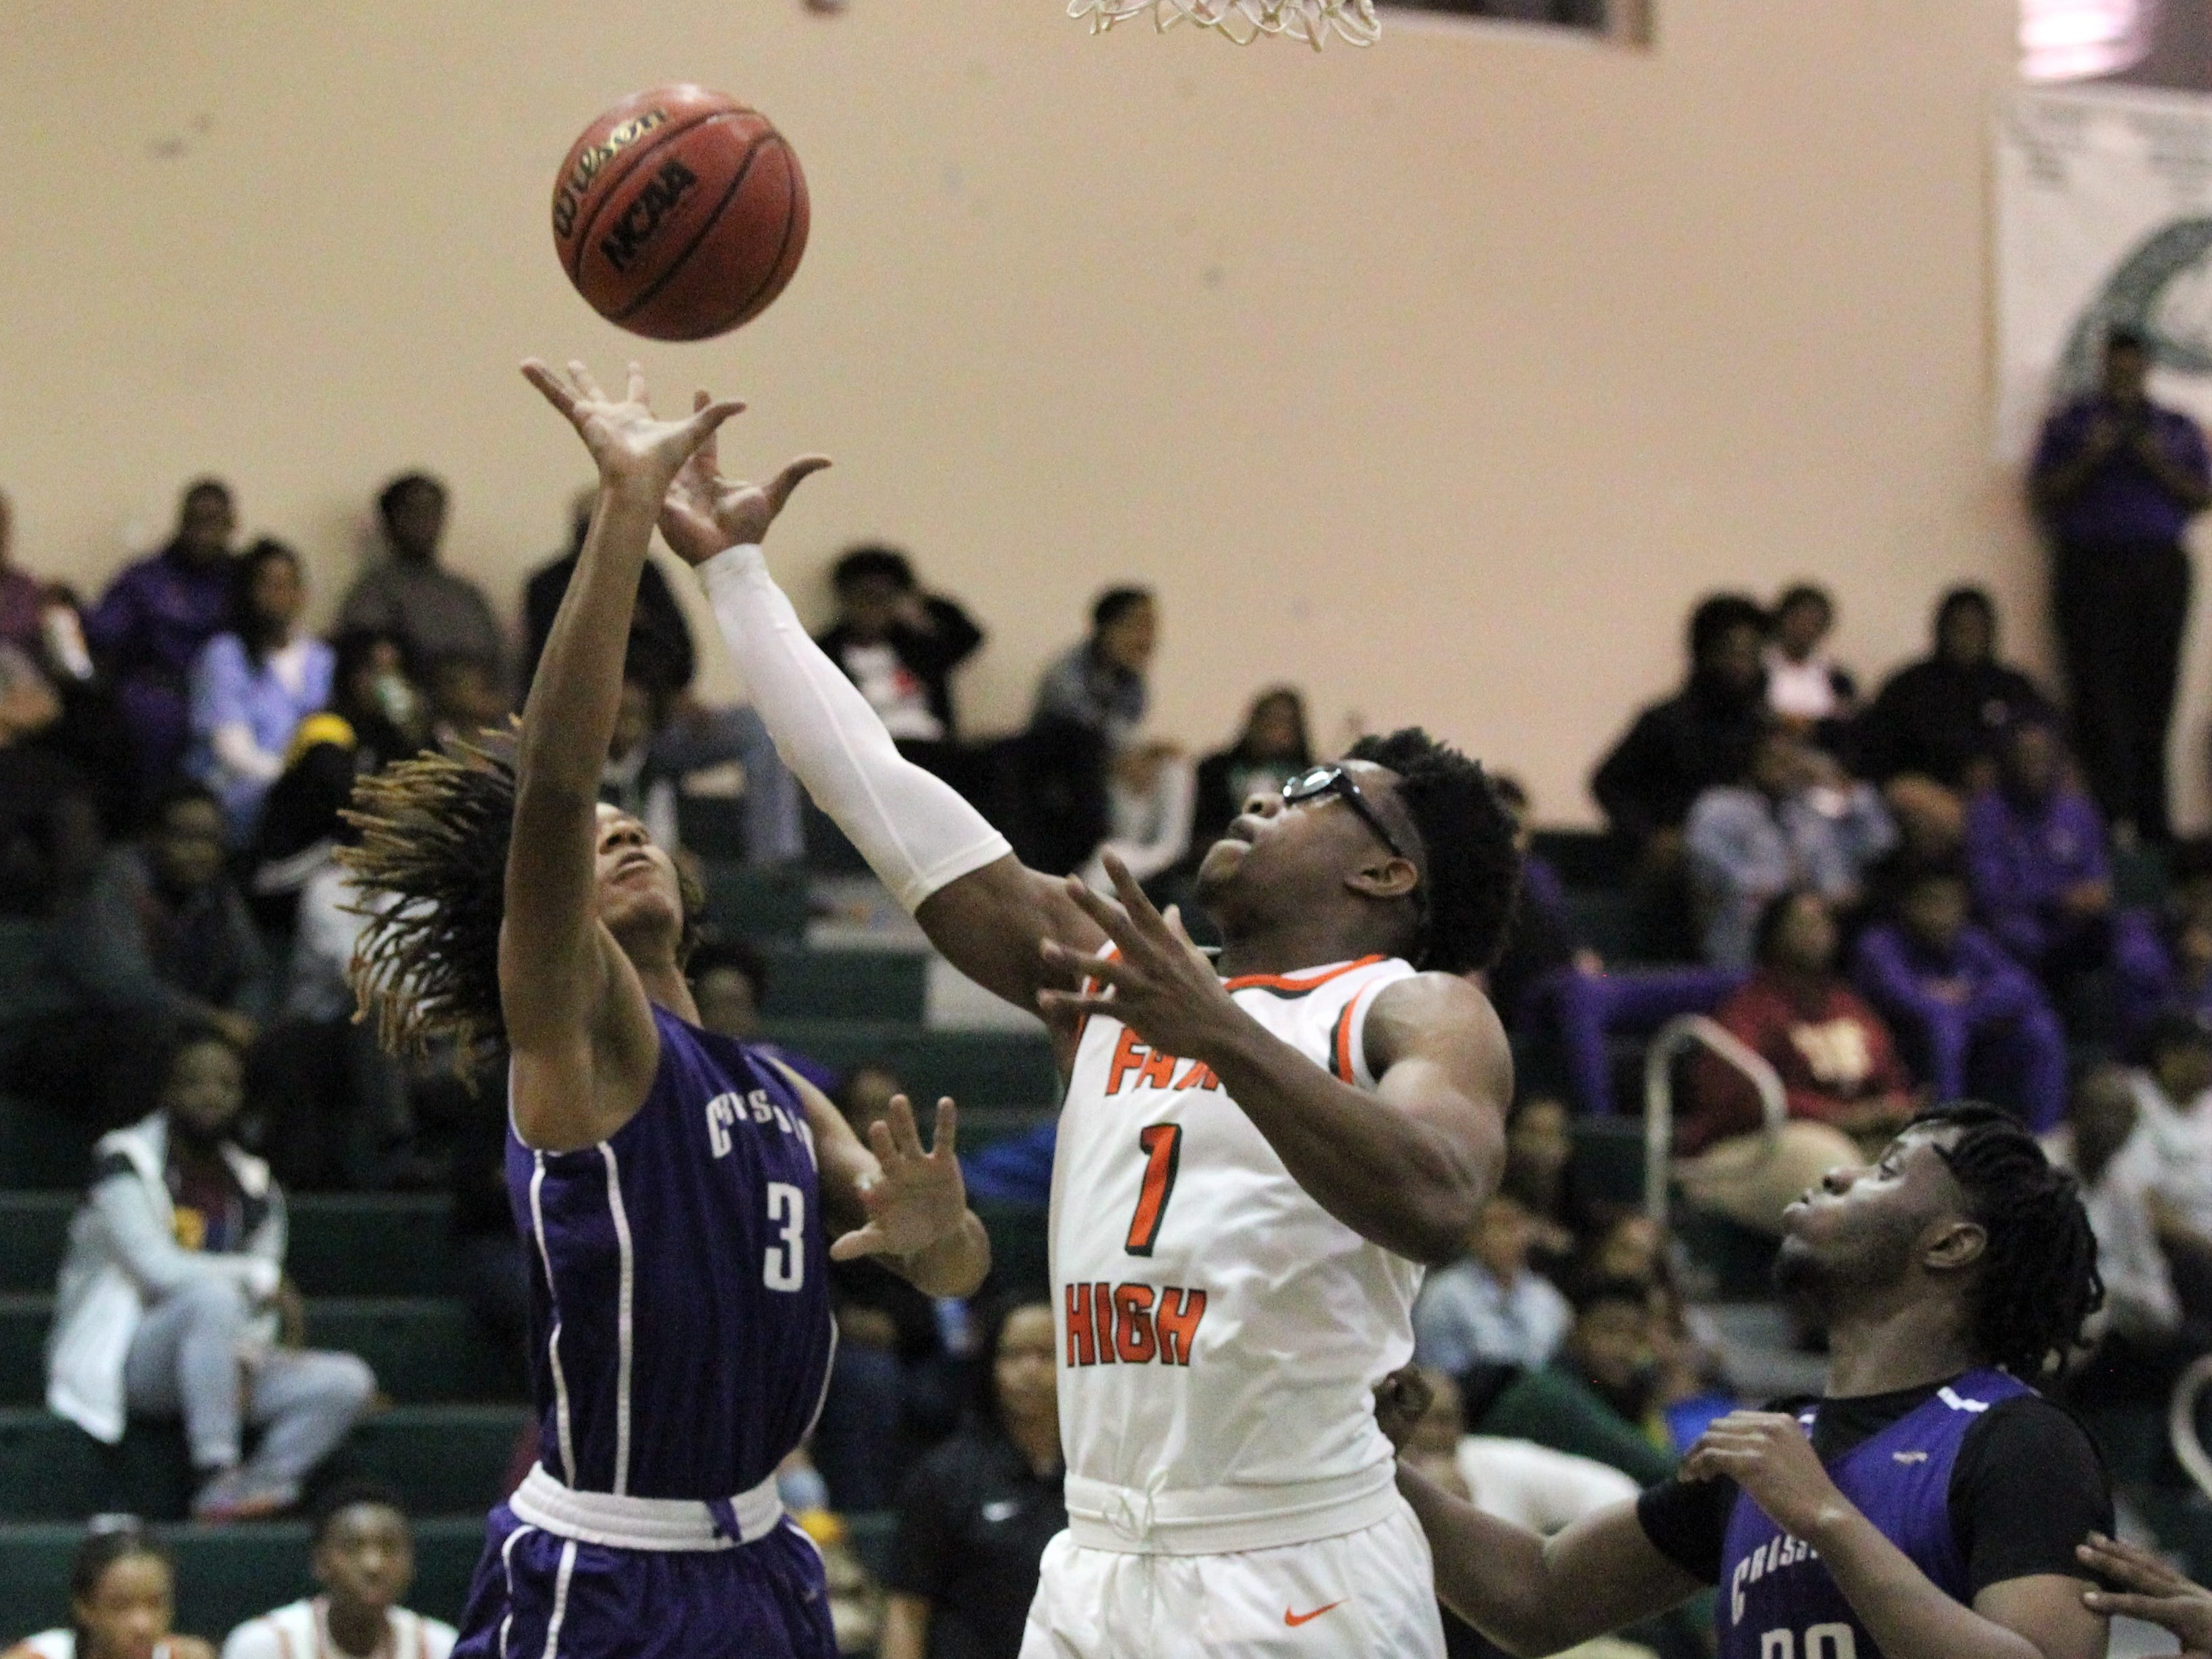 Daemari Wade (3) fights for a rebounds with FAMU DRS' Brian Green as Crossroad Academy's boys basketball team plays at FAMU DRS on Jan. 7, 2019.